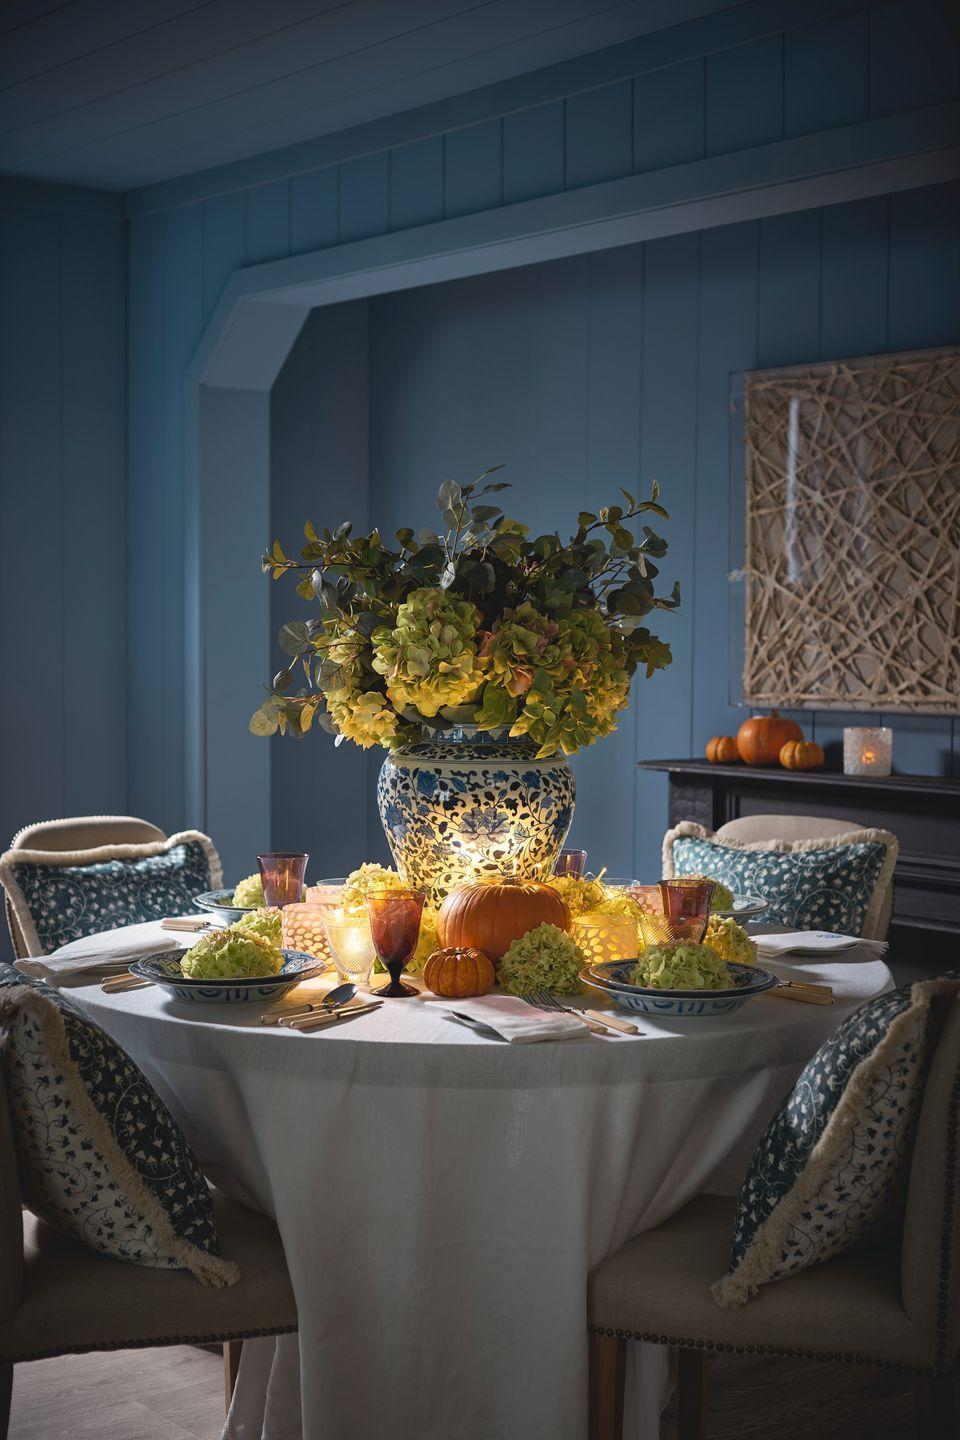 """<p><a href=""""https://www.oka.com/"""" rel=""""nofollow noopener"""" target=""""_blank"""" data-ylk=""""slk:OKA"""" class=""""link rapid-noclick-resp"""">OKA</a> uses a romantic blue-and-white color palette with pops of orange and unexpected lime green for an elegant fall table.</p>"""